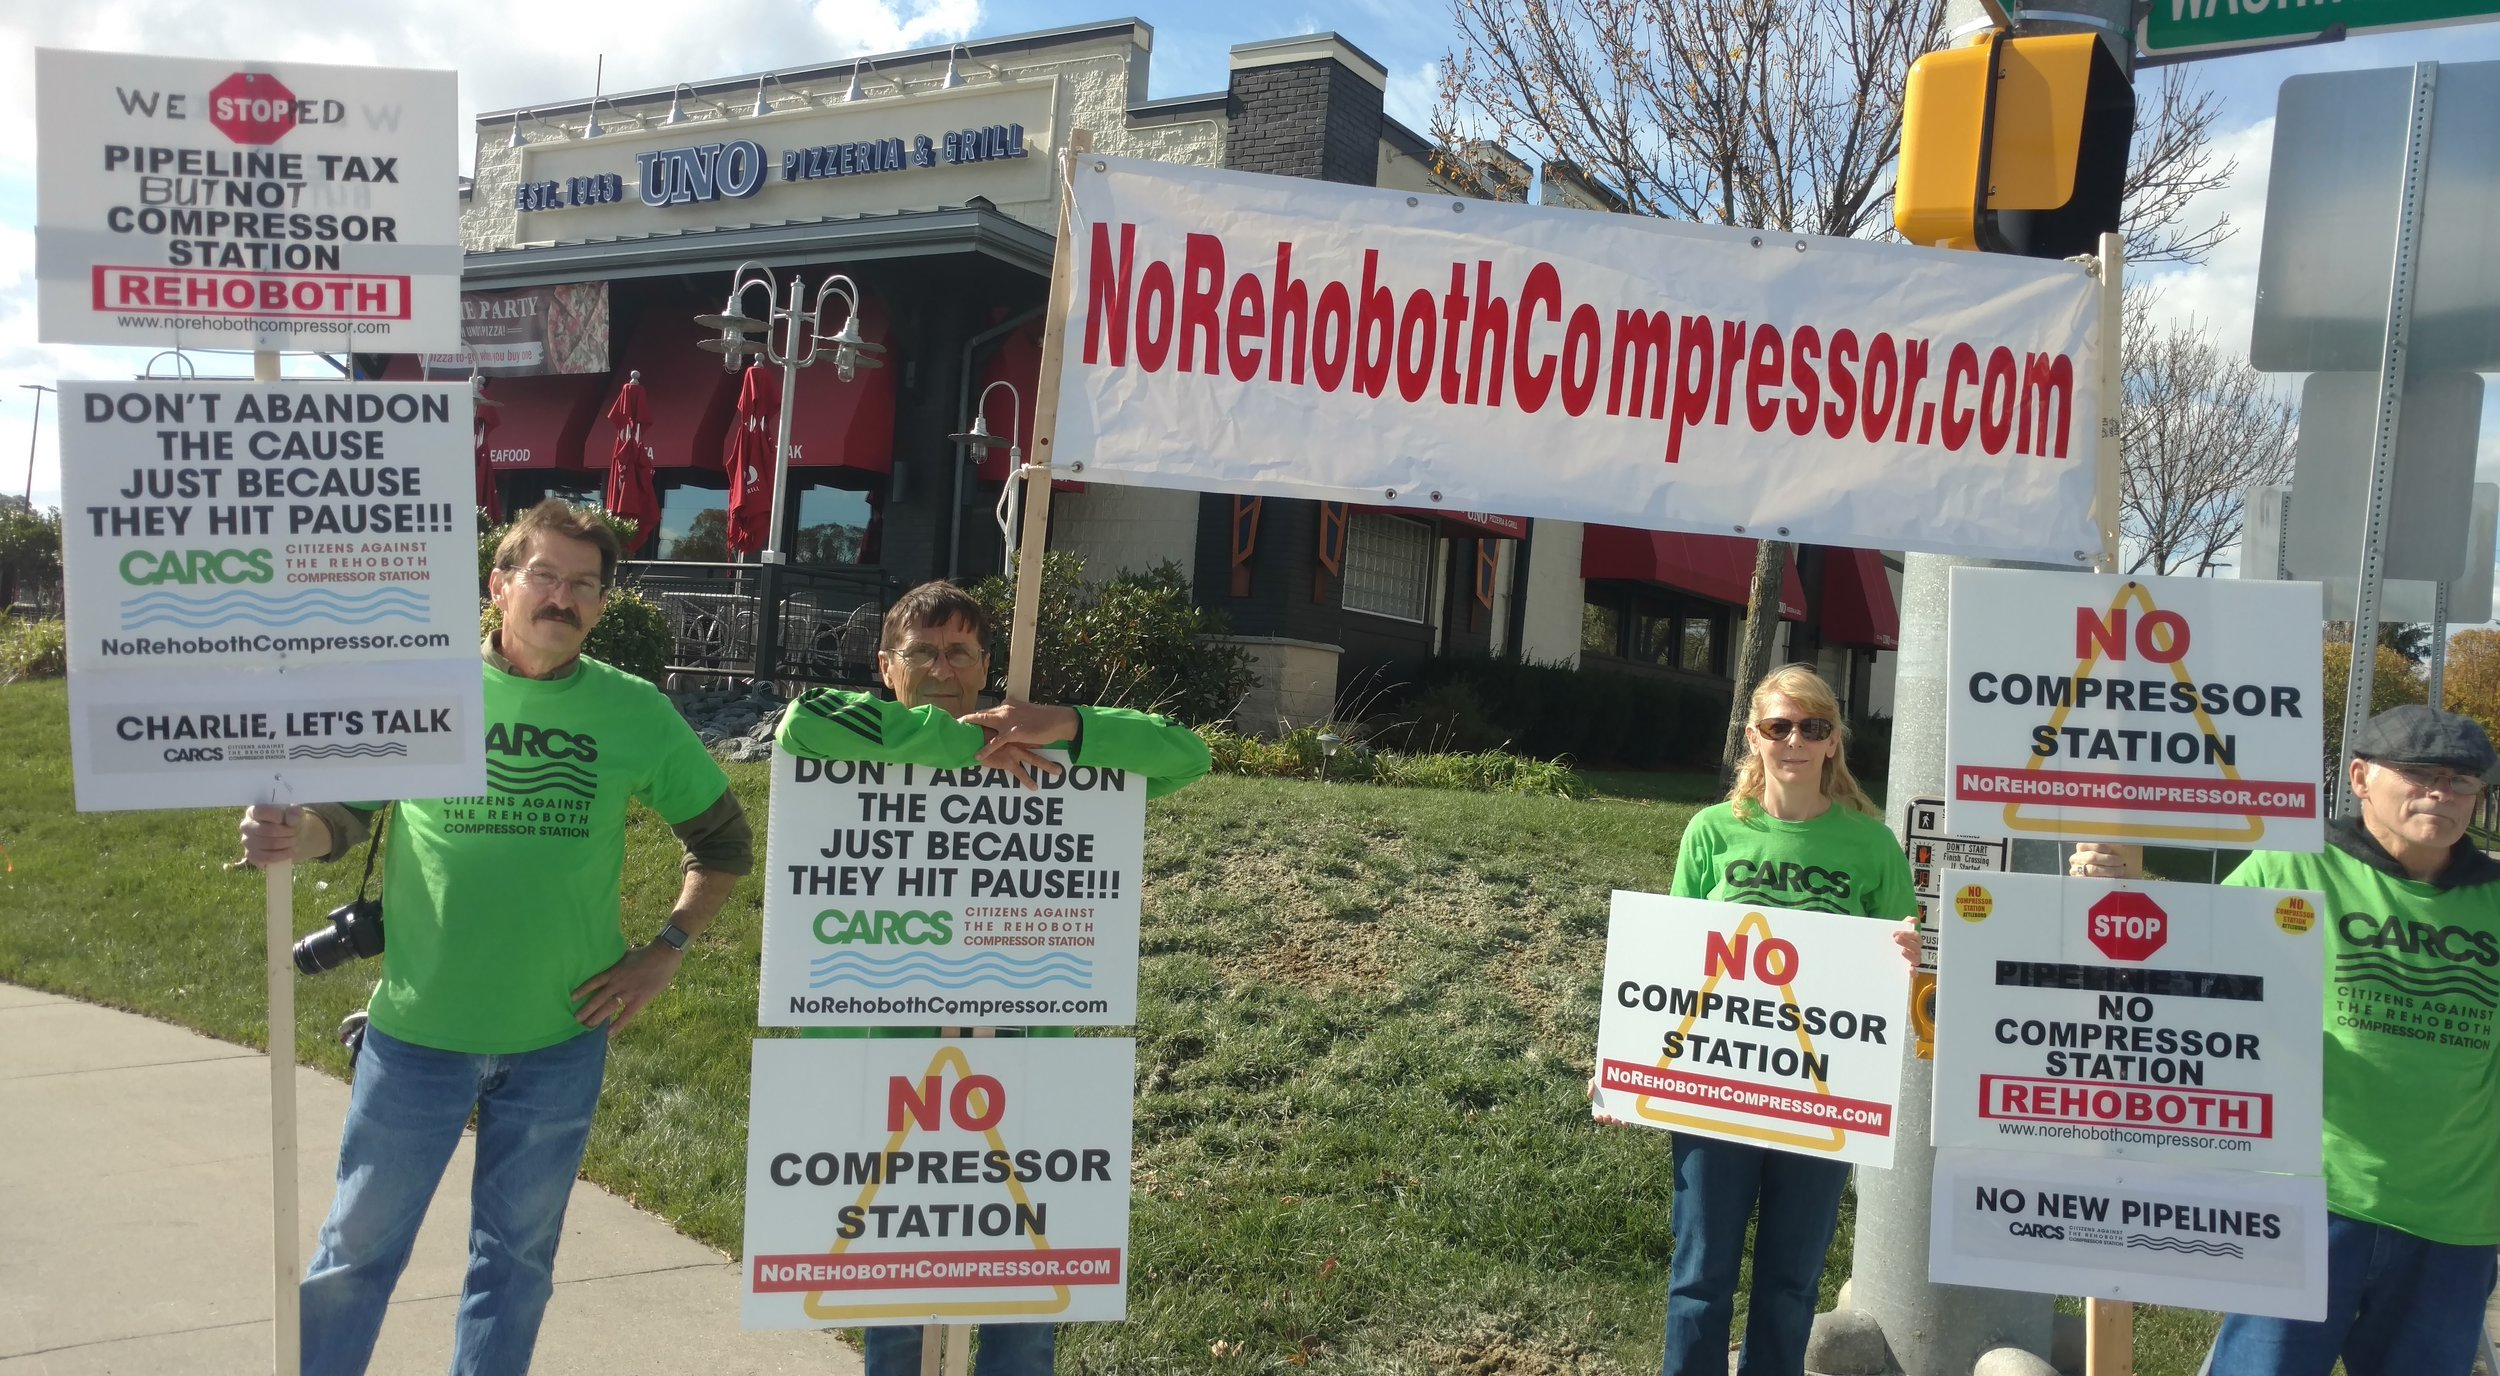 Opponents of a proposed natural-gas pipeline compressor station recently protested outside a local restaurant, where Gov. Charlie Baker stumped for Attleboro's mayor. (Tim Faulkner/ecoRI News photos)